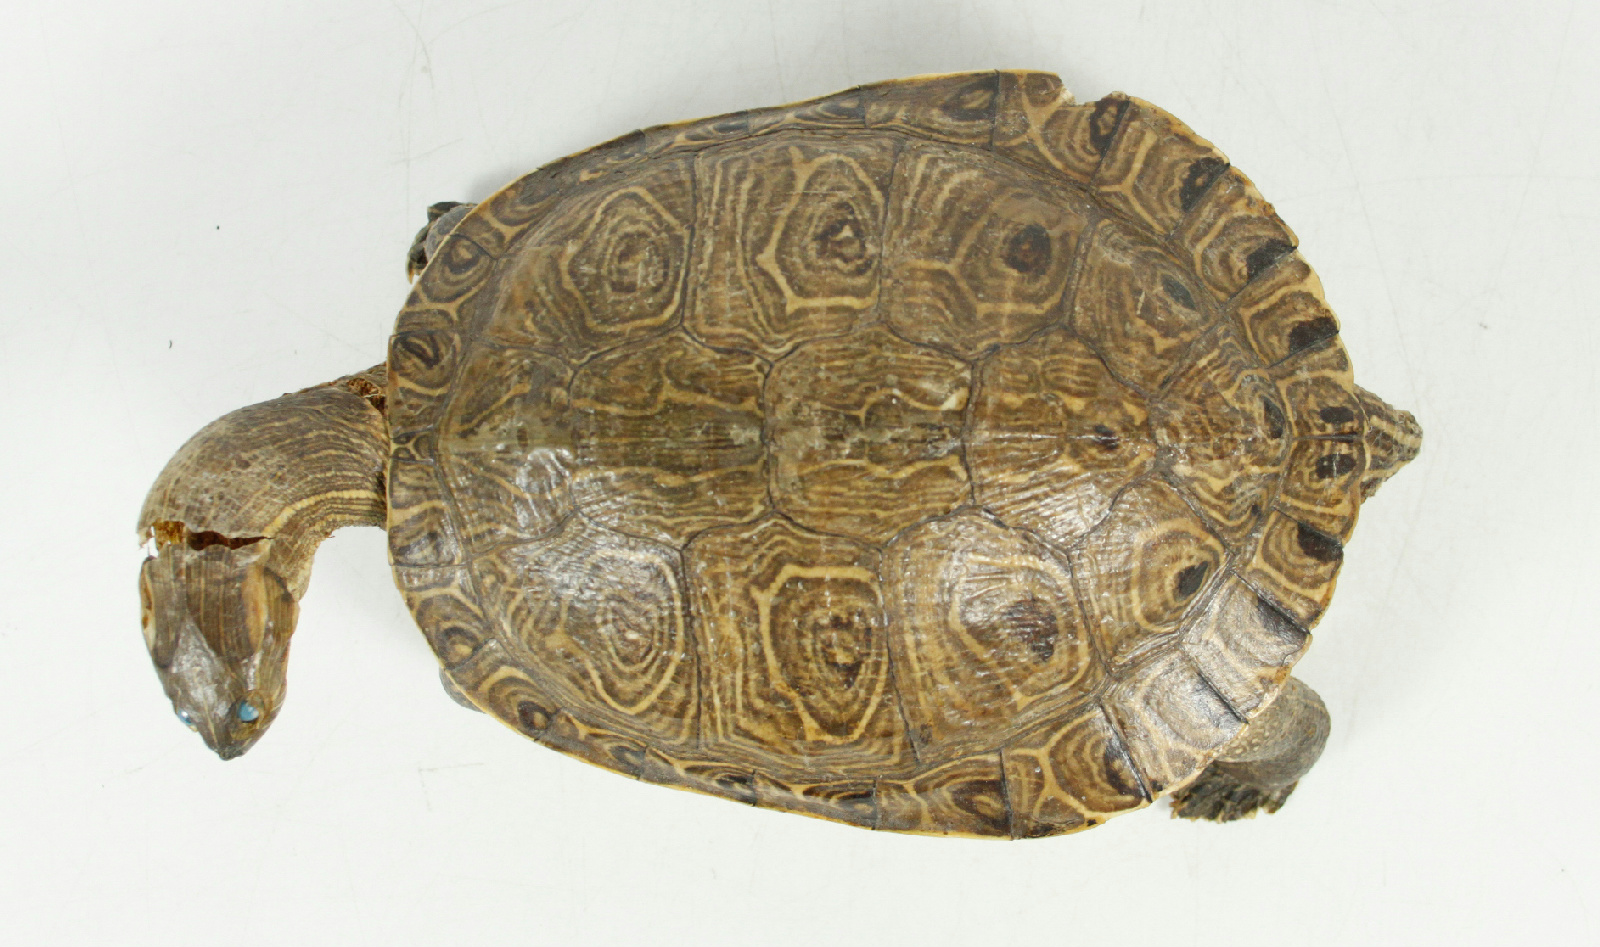 vintage real full size taxidermy turtle rustic cabin home faux taxidermy soft toy home decor wall art hand